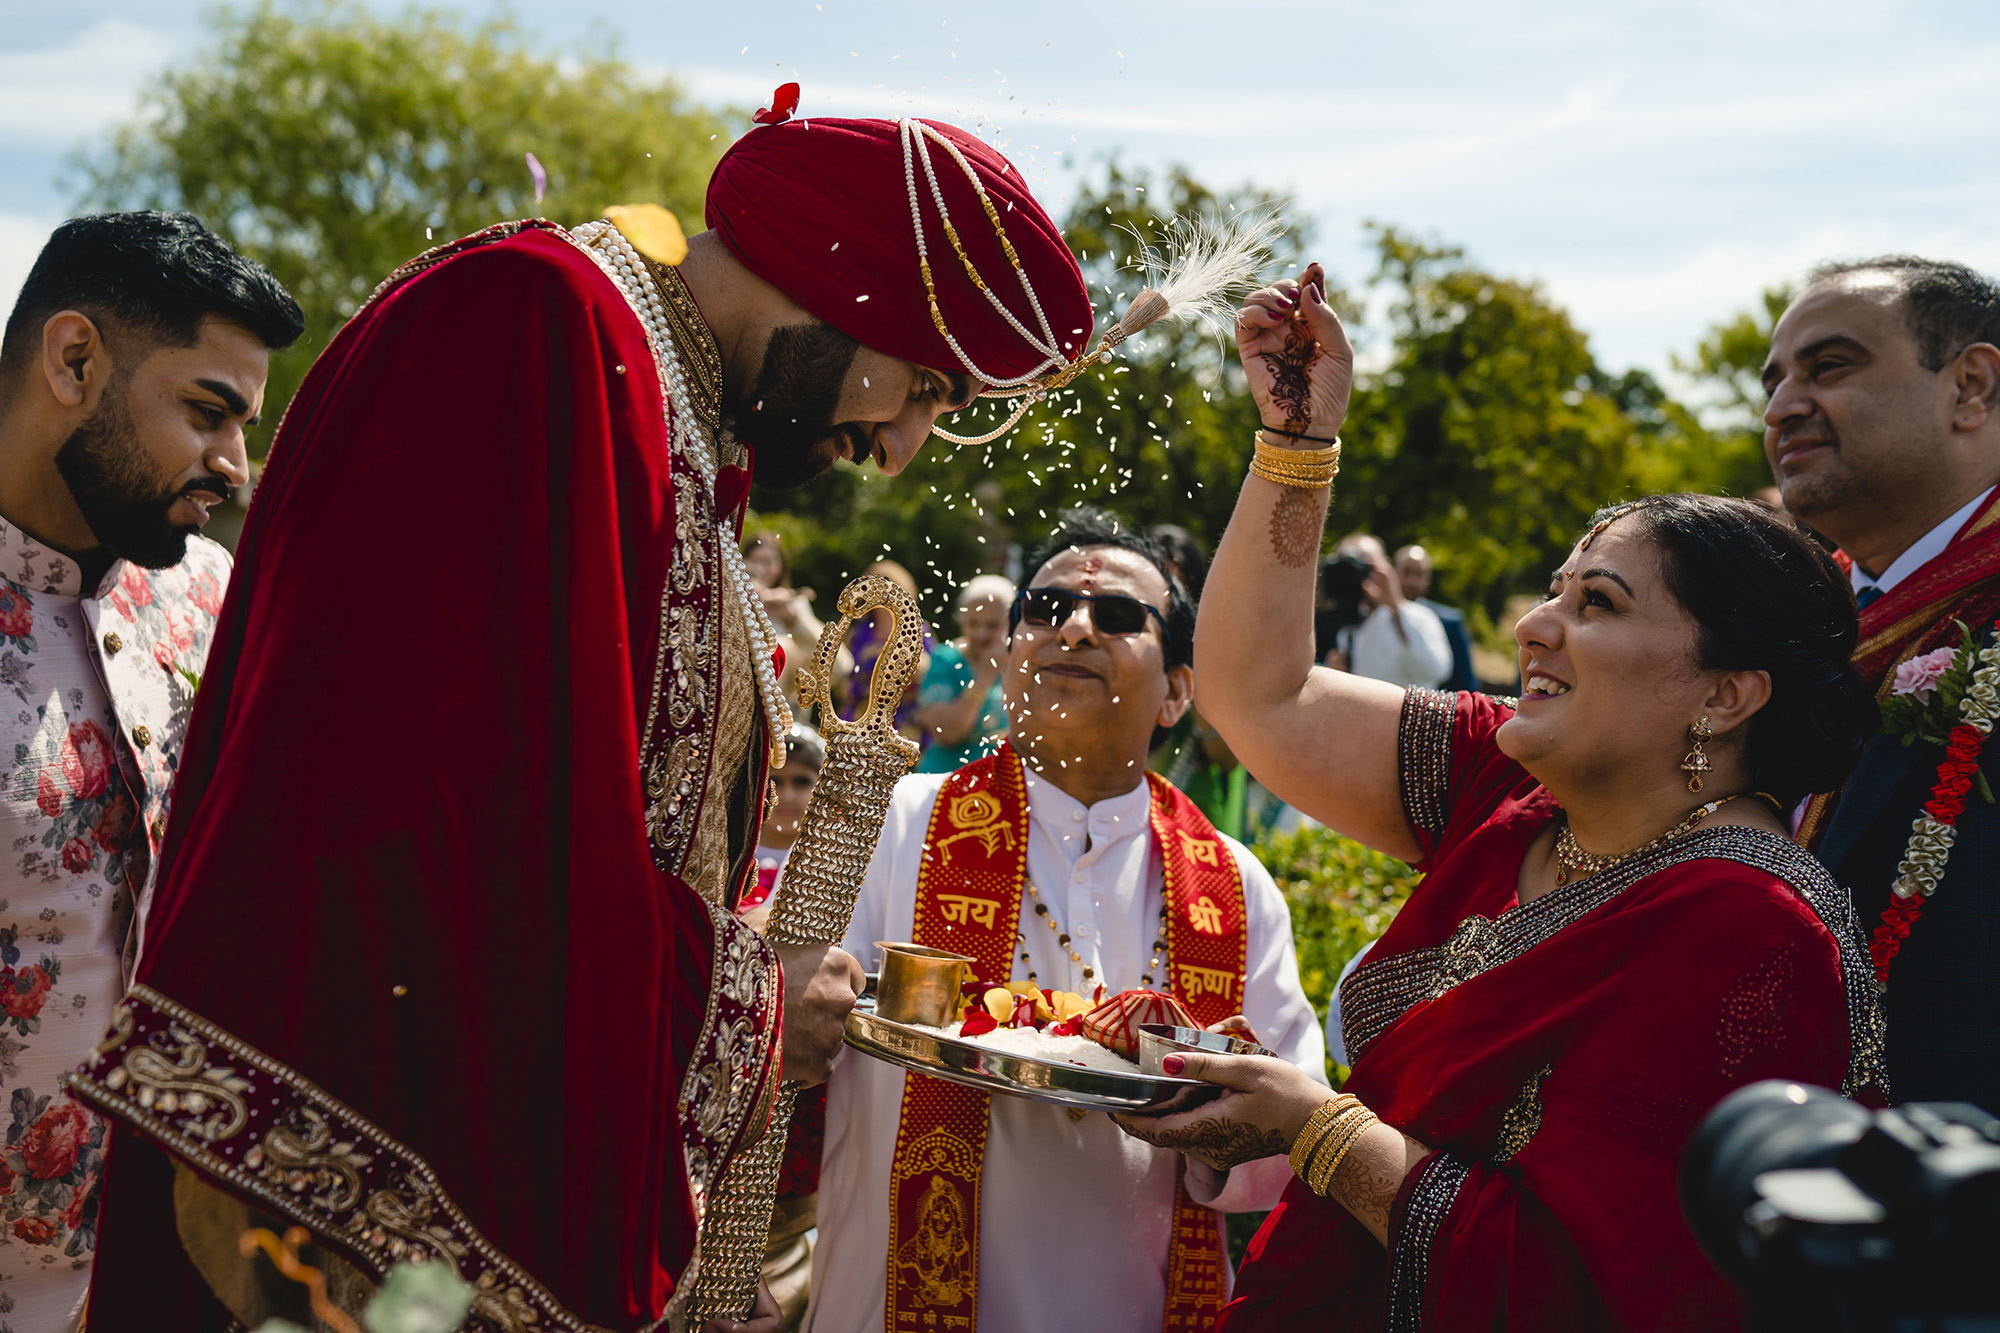 pokhwanu blessing of the groom at the beginning of the hindu wedding